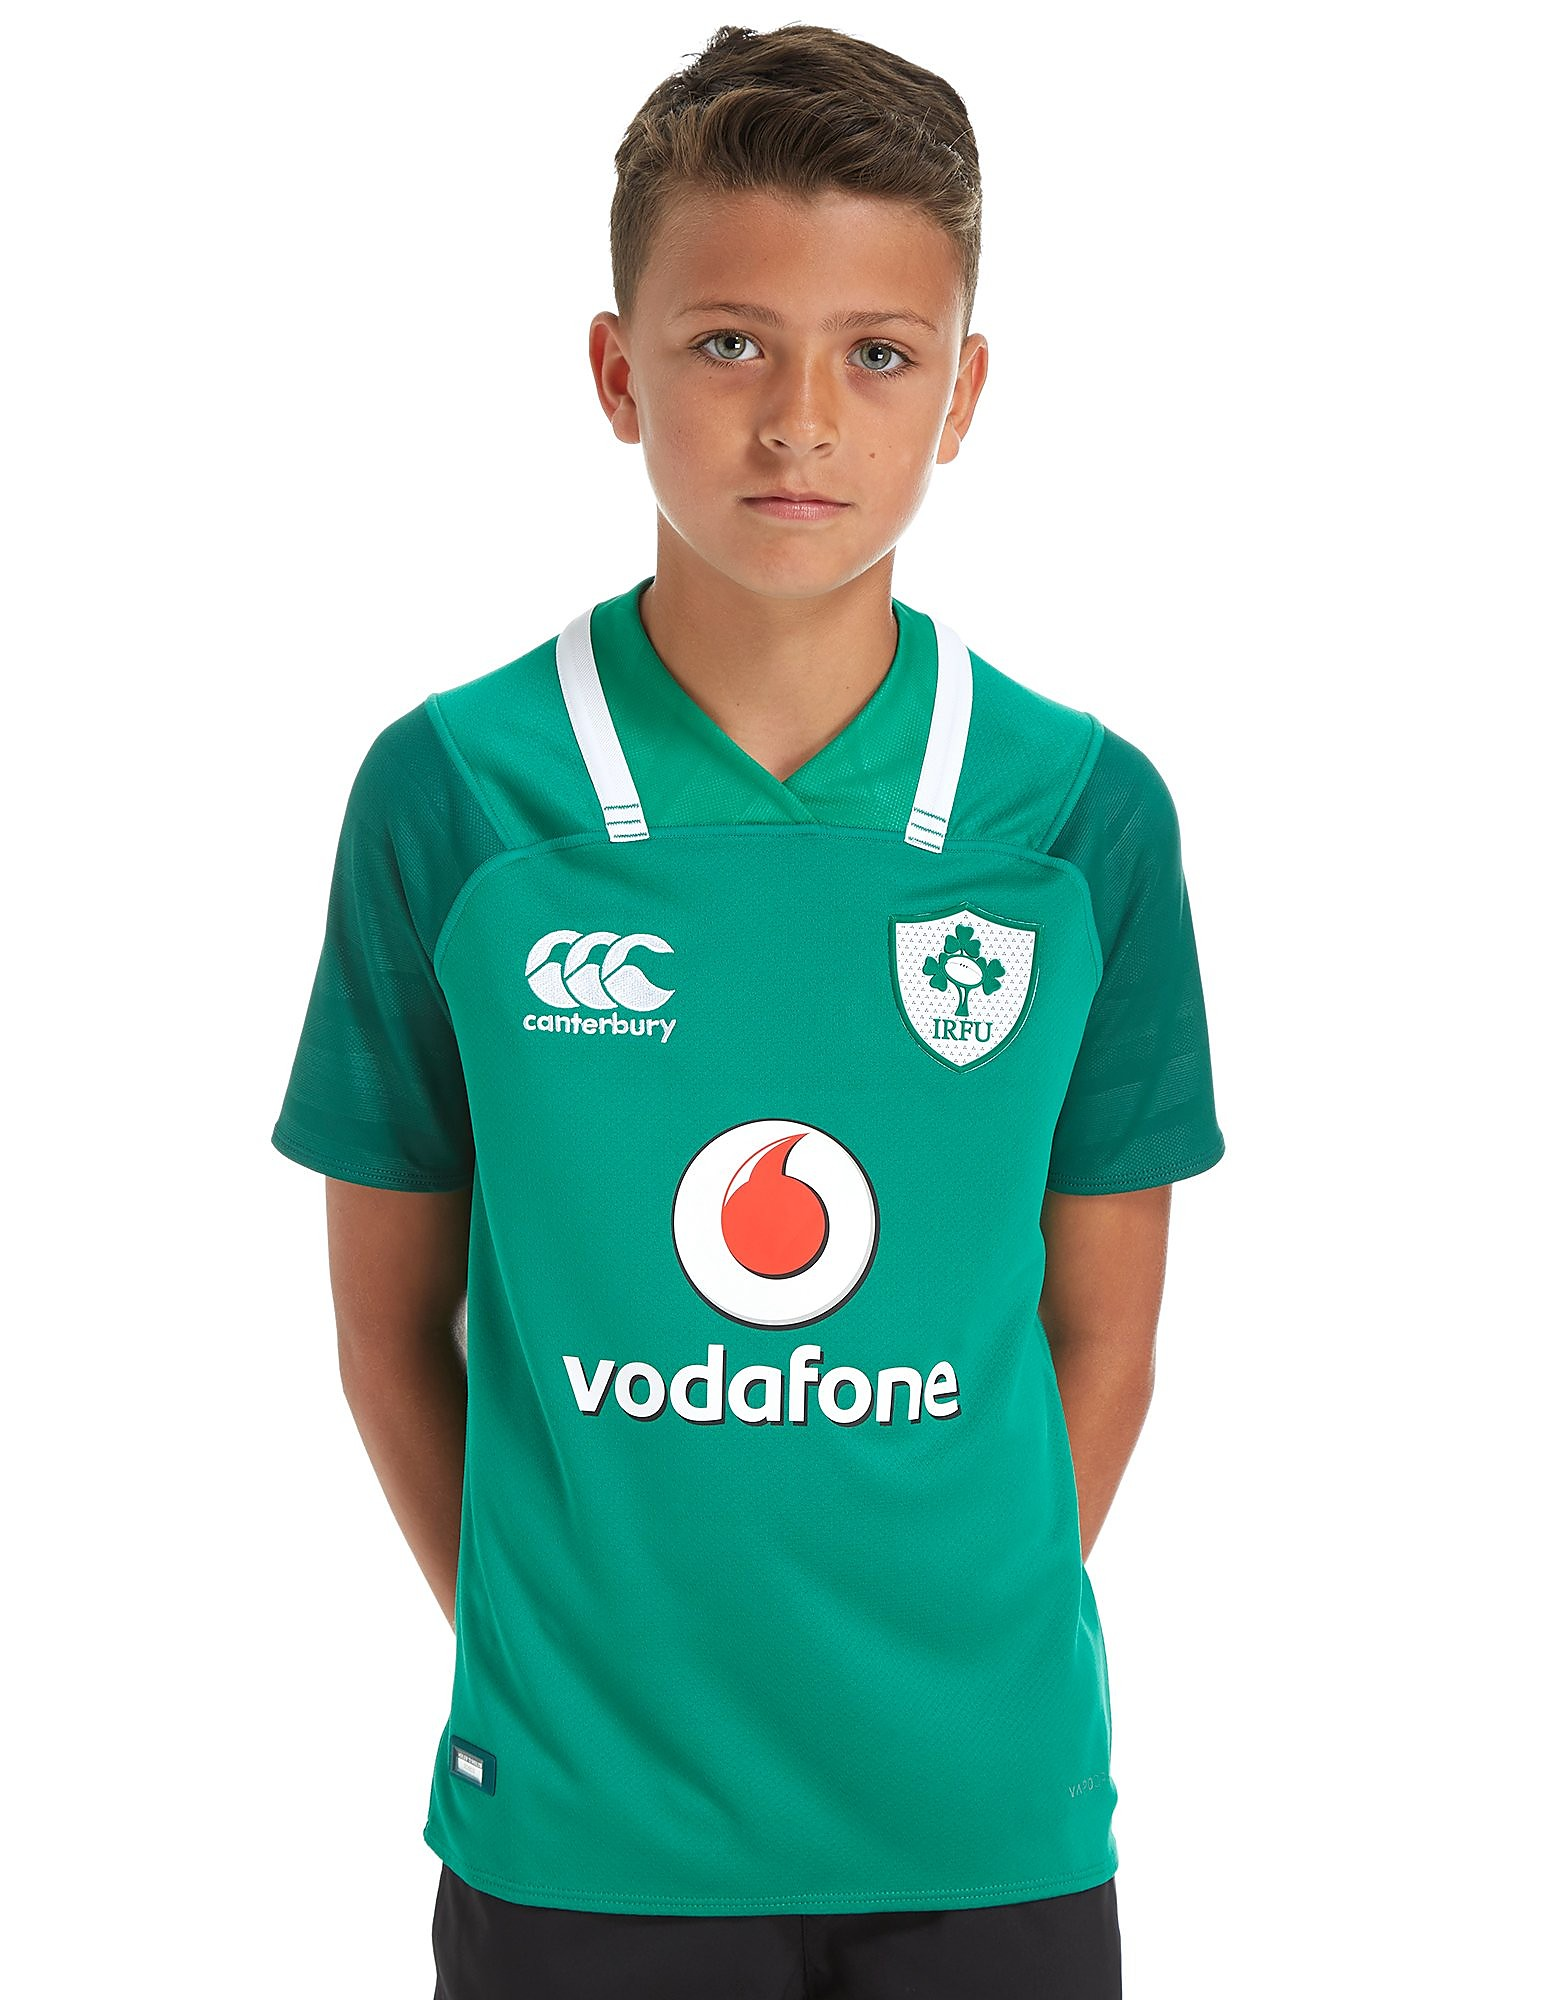 Canterbury Ireland RFU 2017 Home Player Shirt Junior